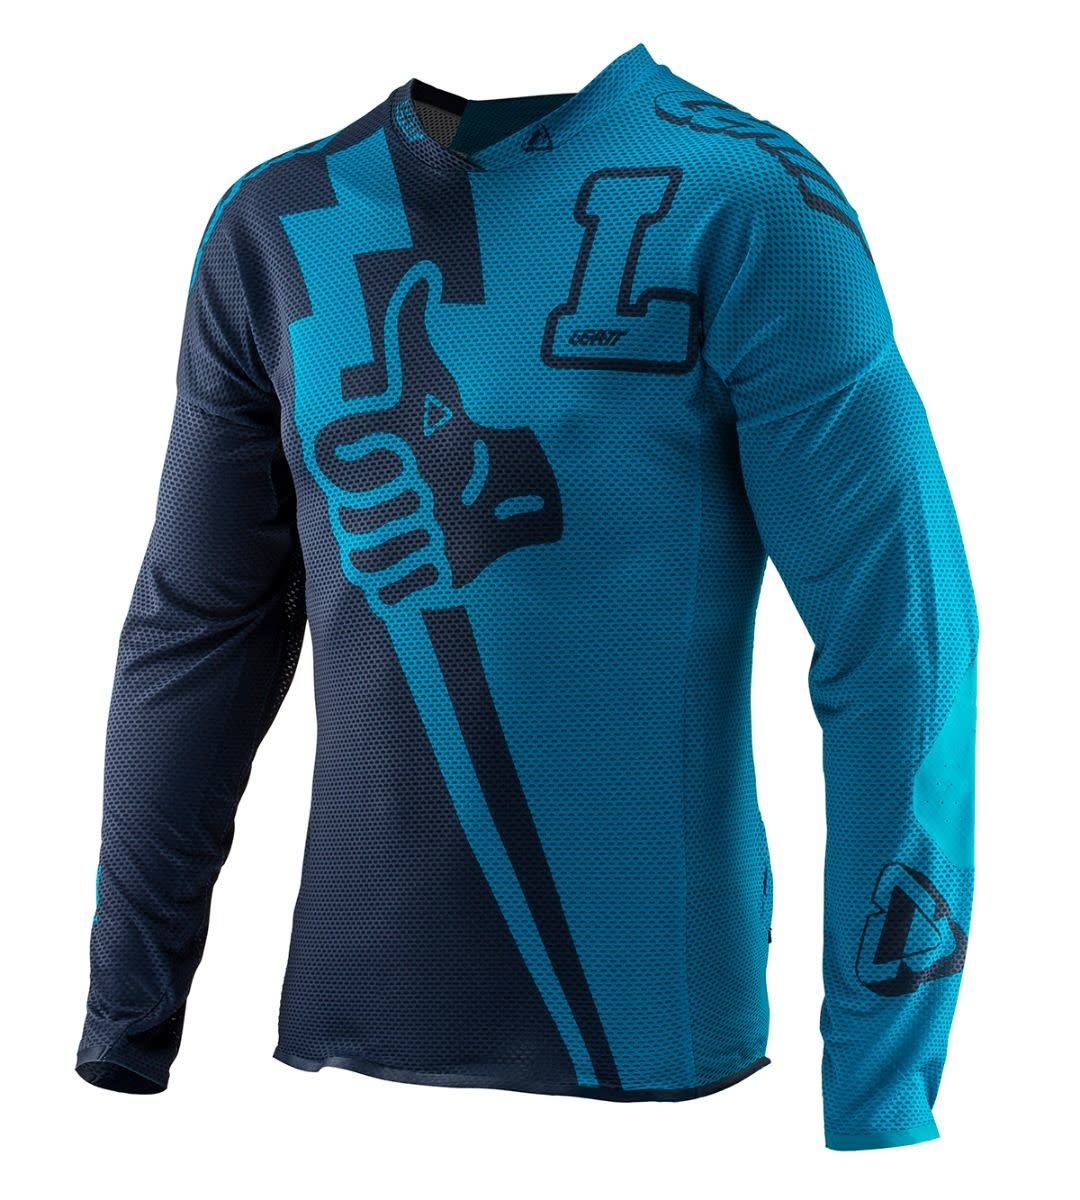 Leatt Leatt Jersey DBX 4.0 UltraWeld #L Stadium Ink